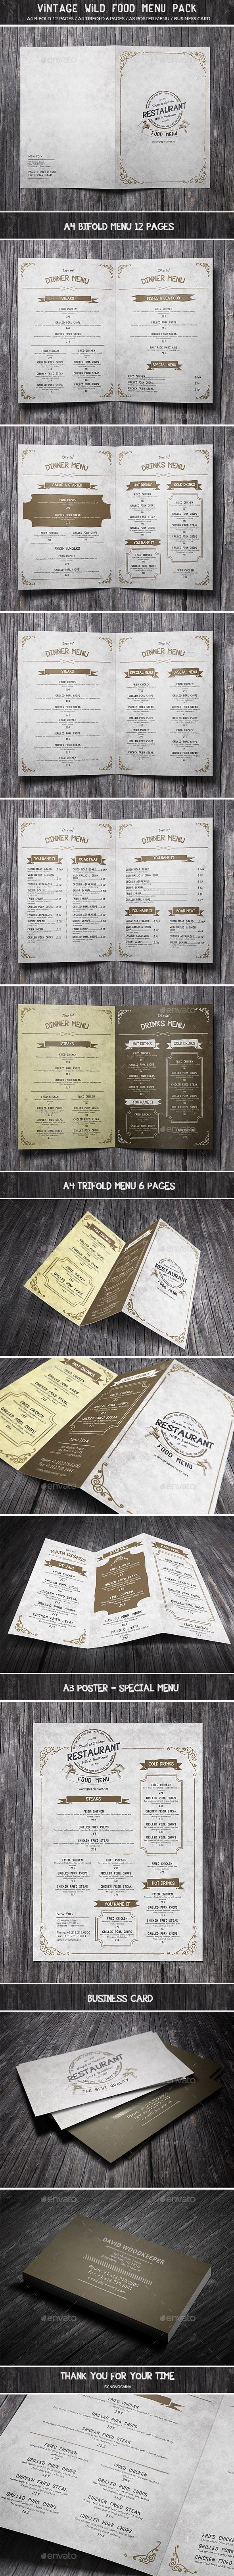 Vintage Wild Food Menu Pack - Food Menus Print Templates